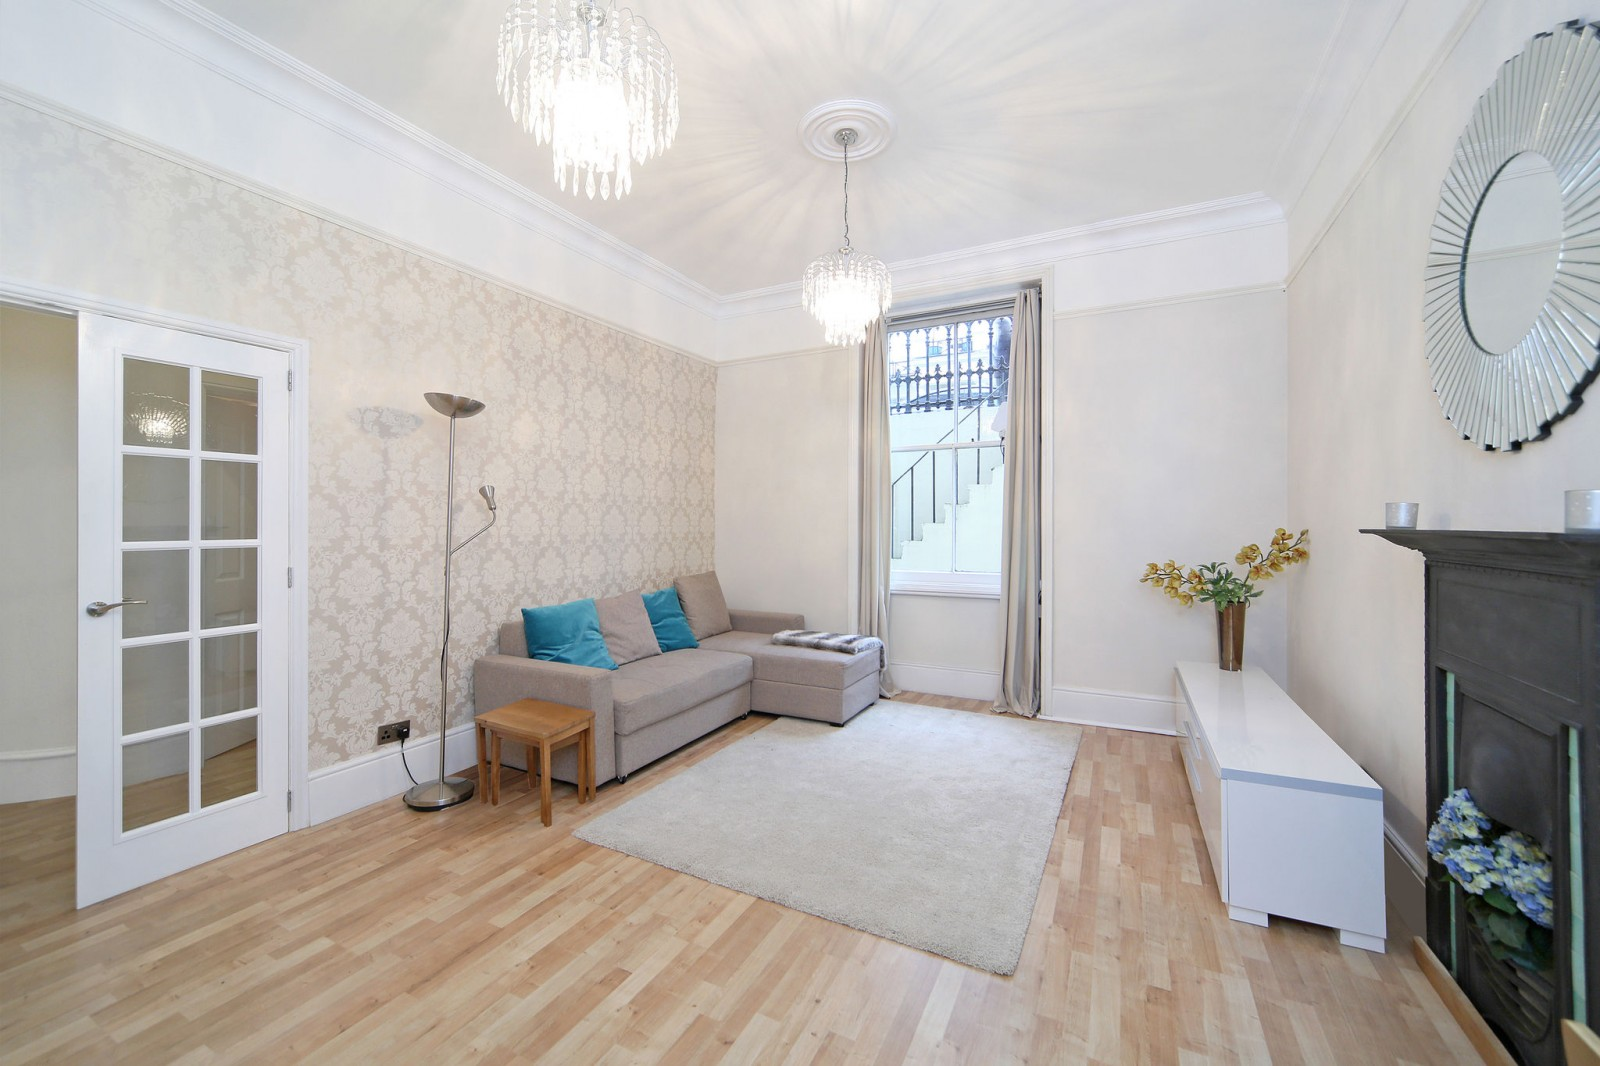 2 Bedroom Garden Flat London 2 Bedroom Flat To Rent Lexham Gardens London W W8 6jq